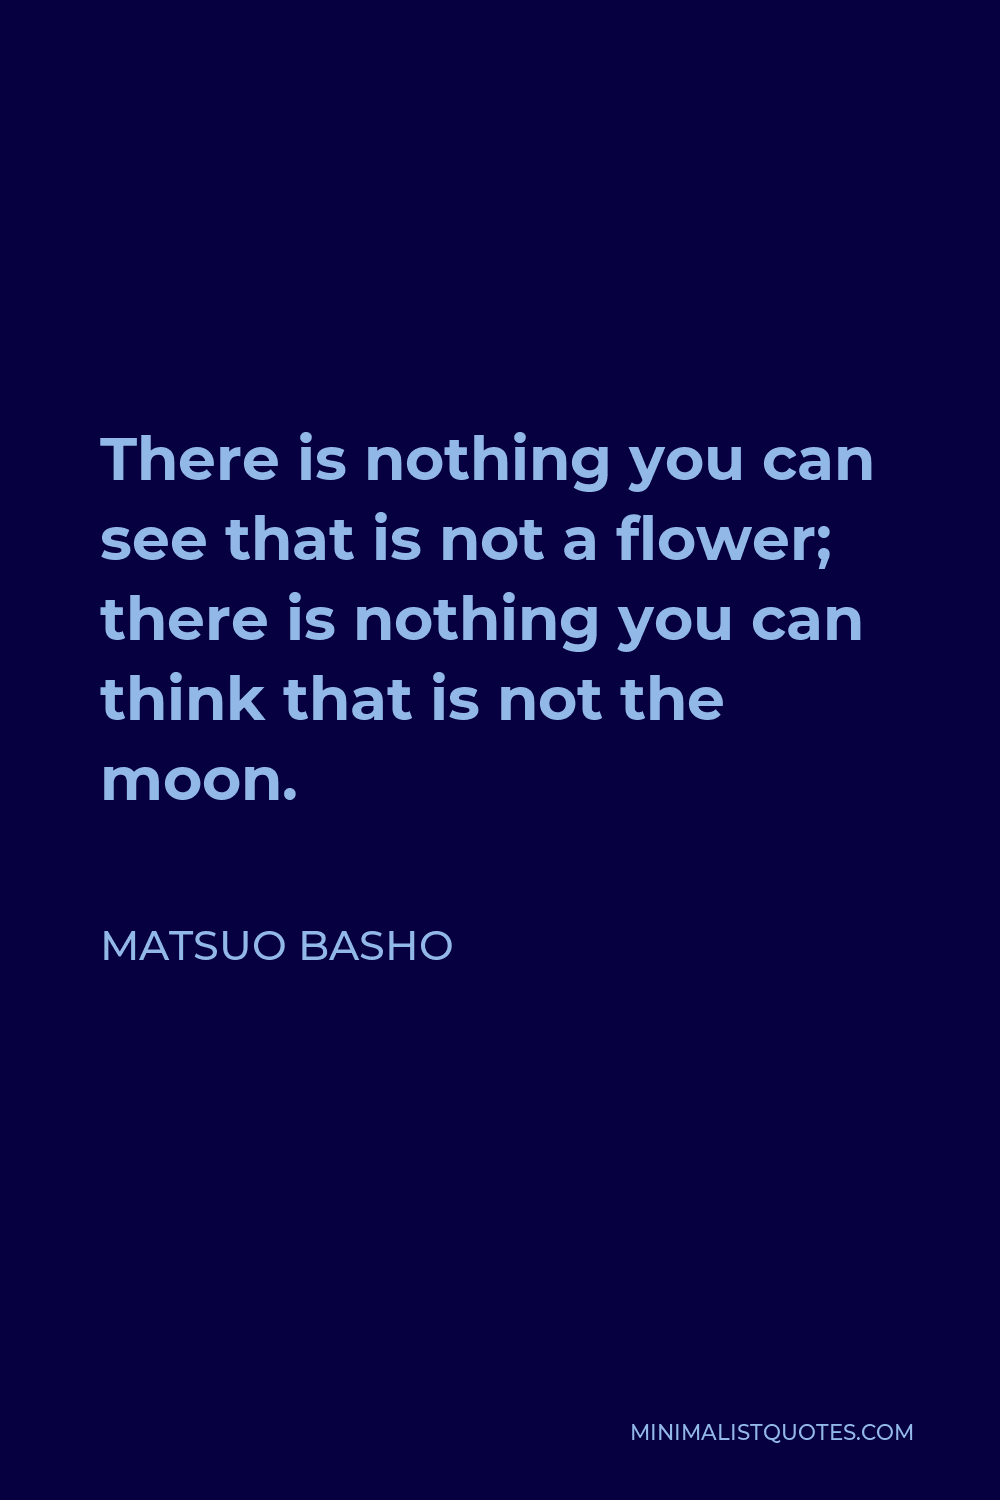 Matsuo Basho Quote - There is nothing you can see that is not a flower; there is nothing you can think that is not the moon.